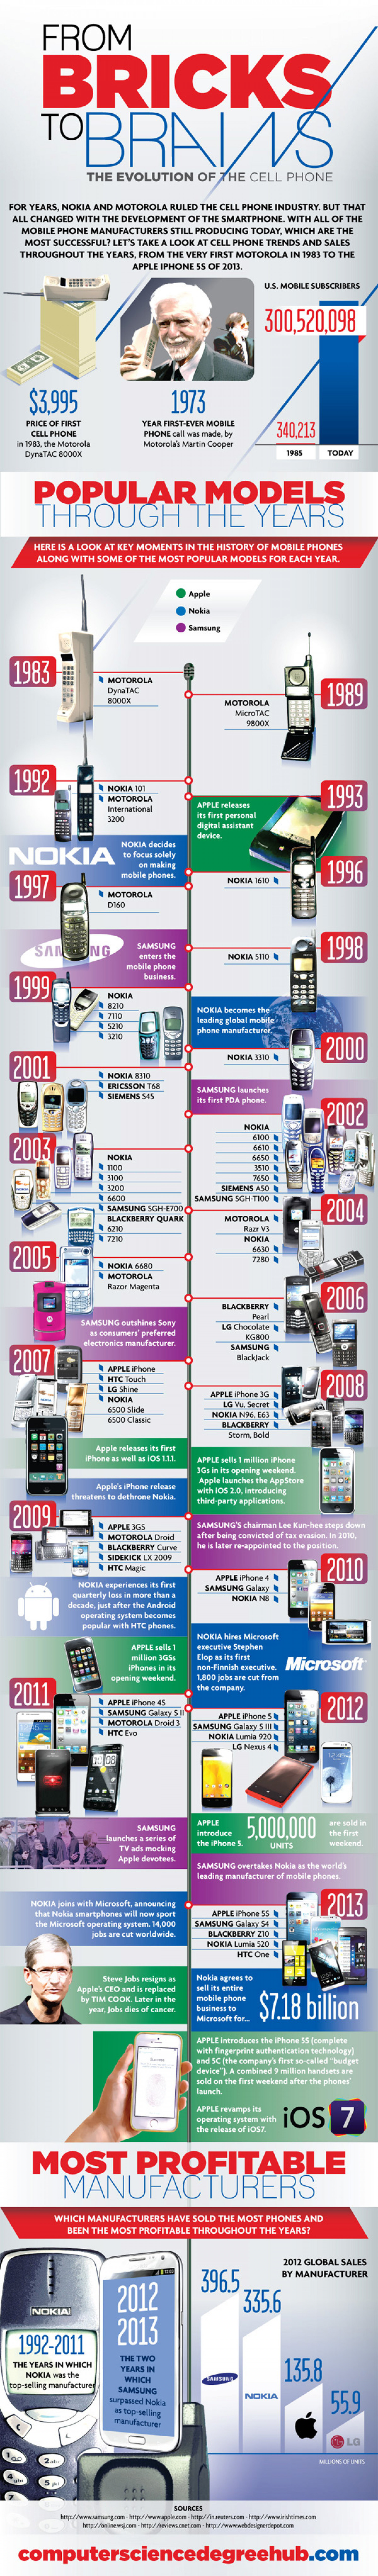 From Bricks to Brains: The Evolution of the Cell Phone Infographic